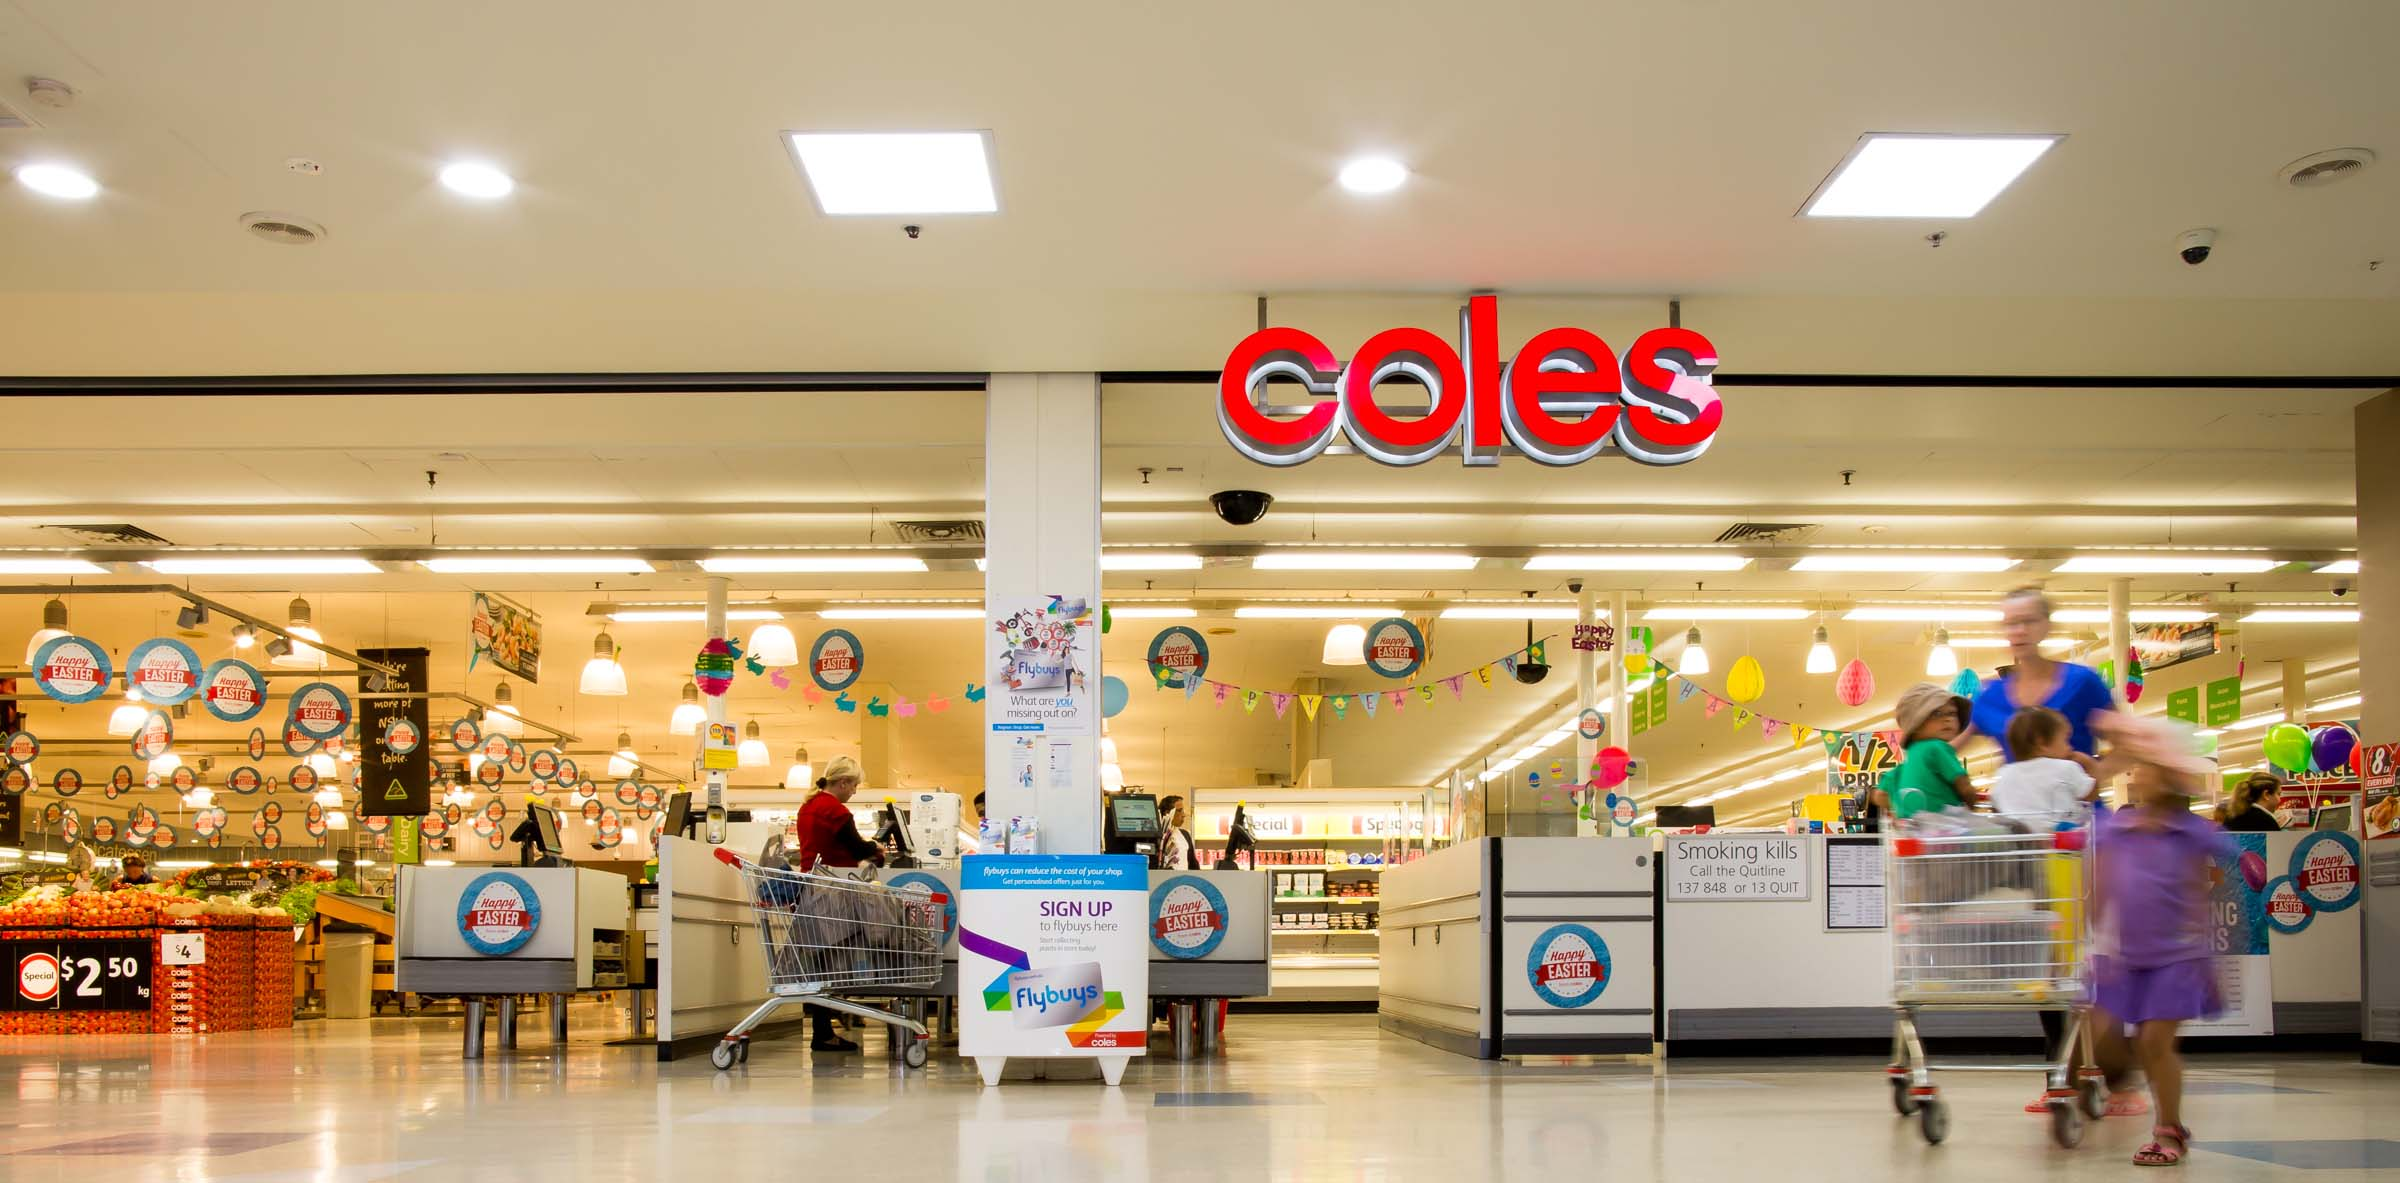 coles website about us 2